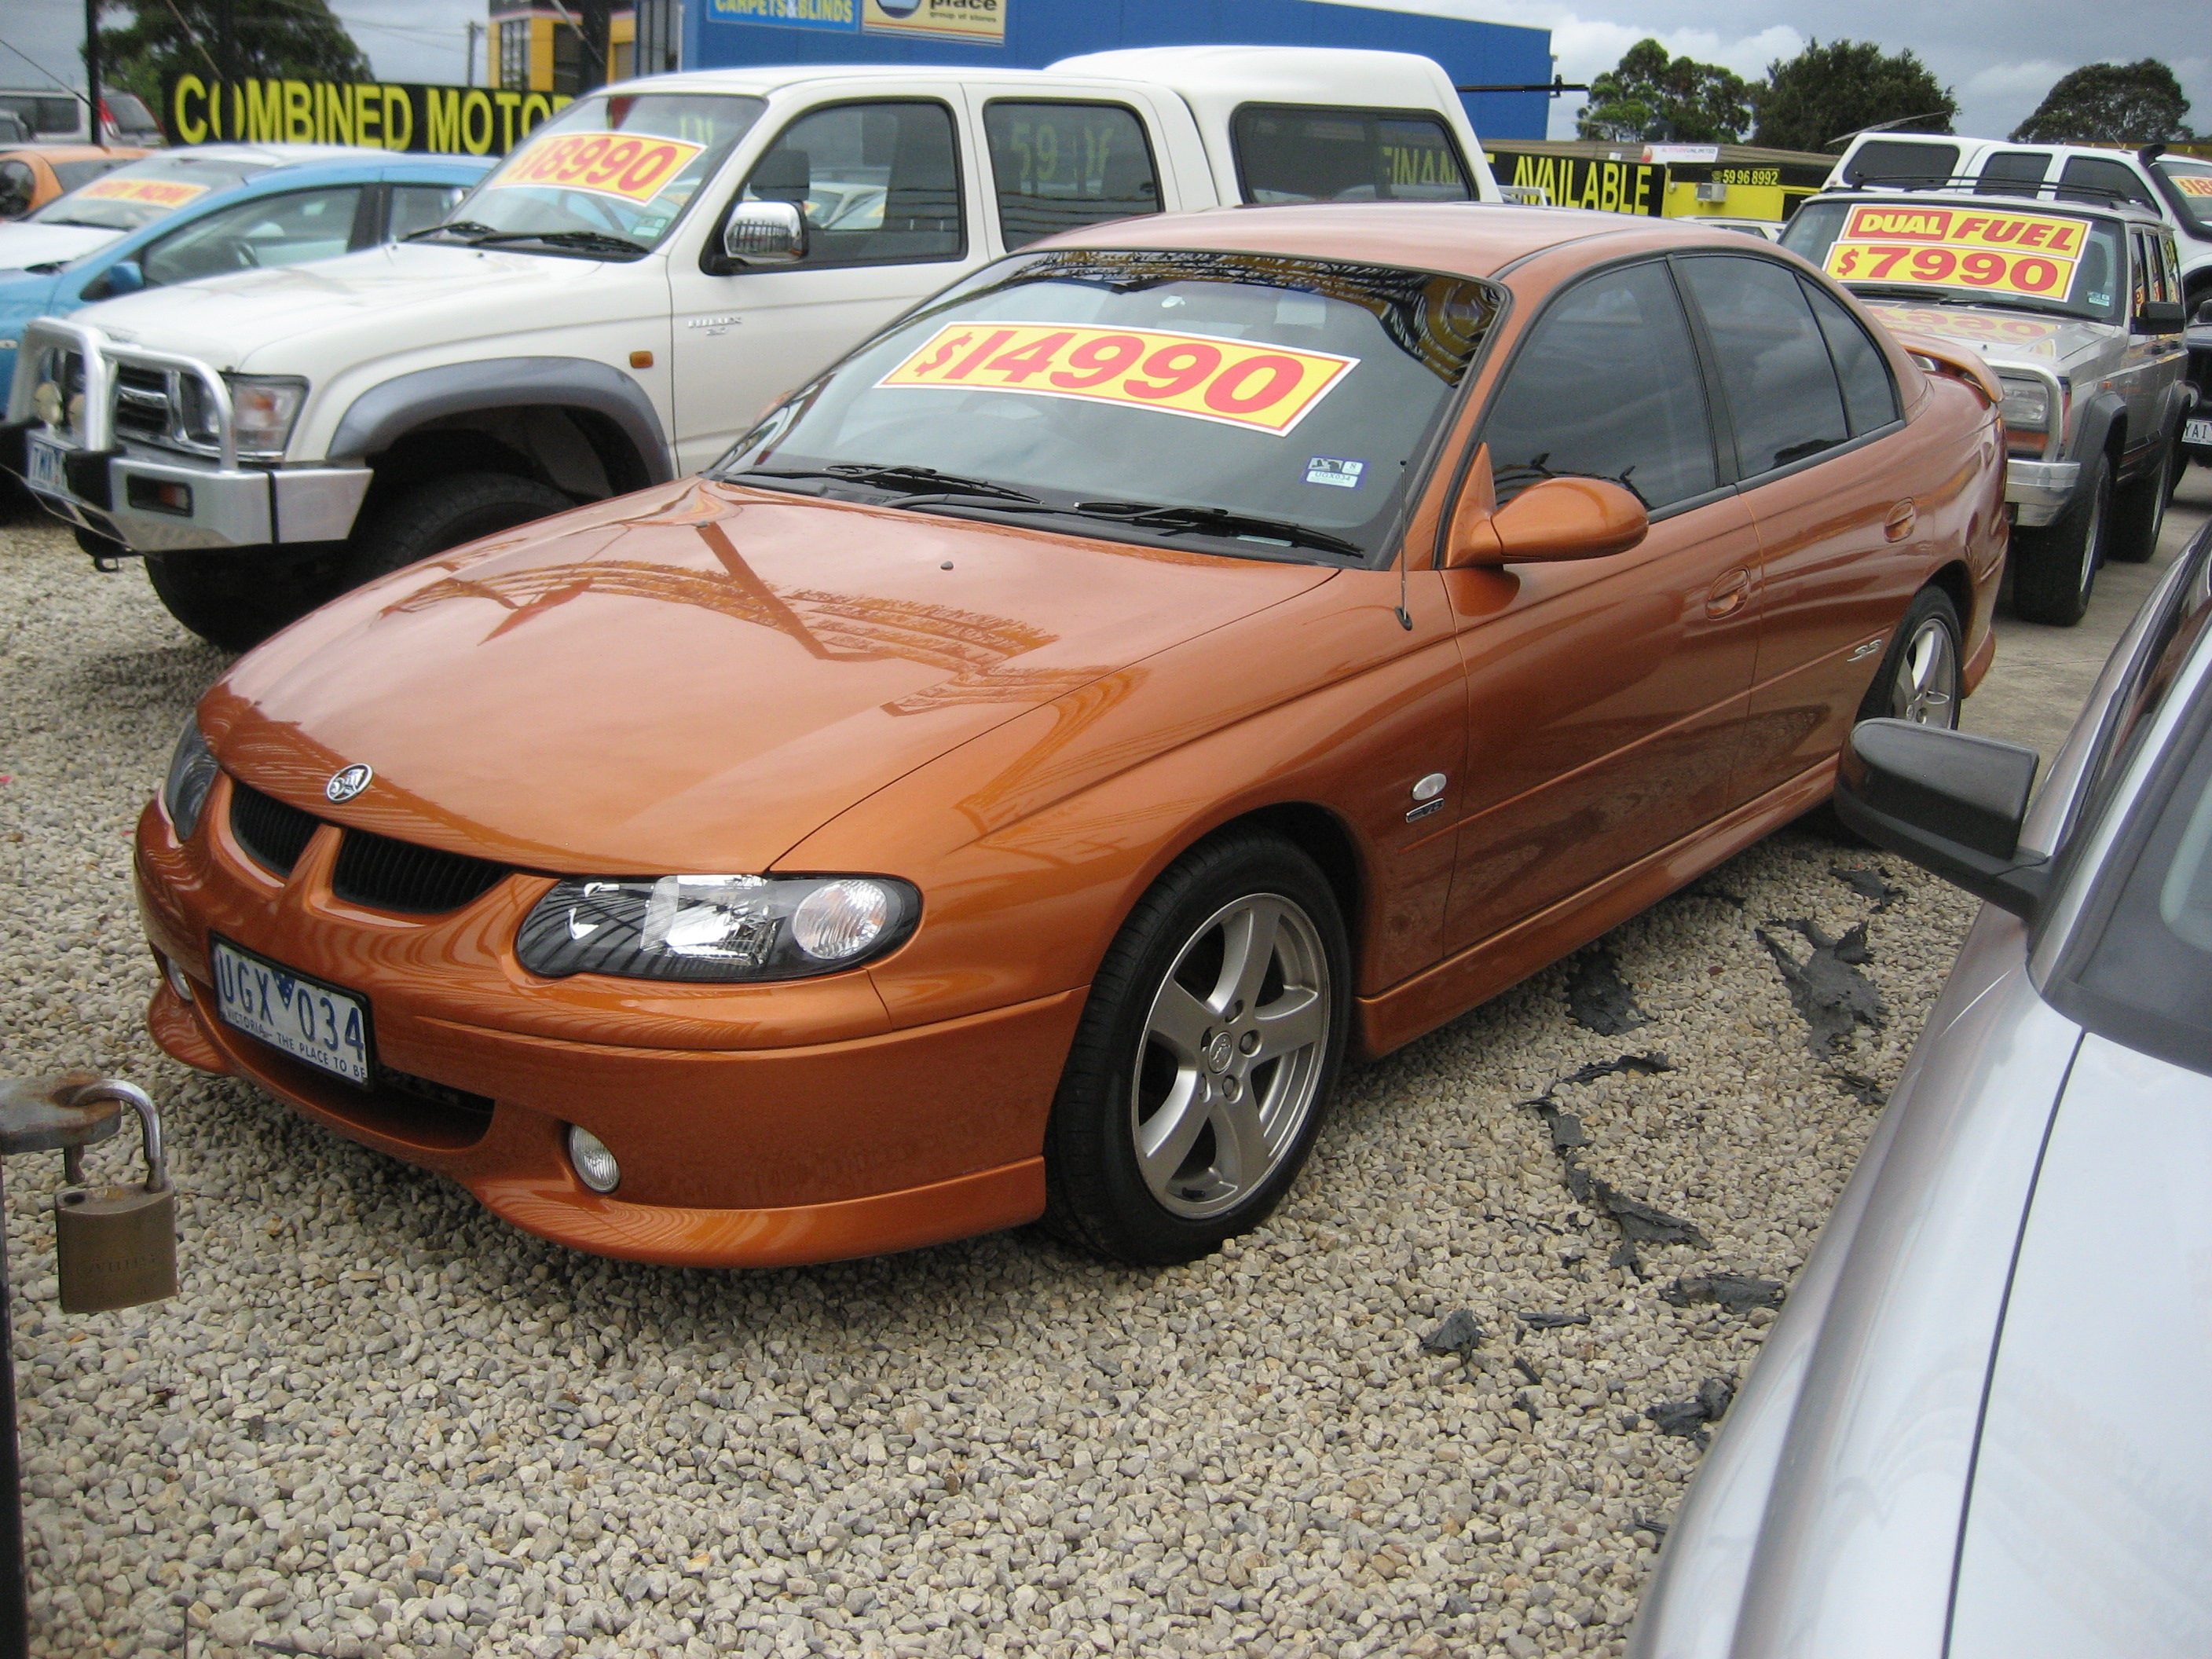 File:Holden Commodore VX SS jpg - Wikimedia Commons